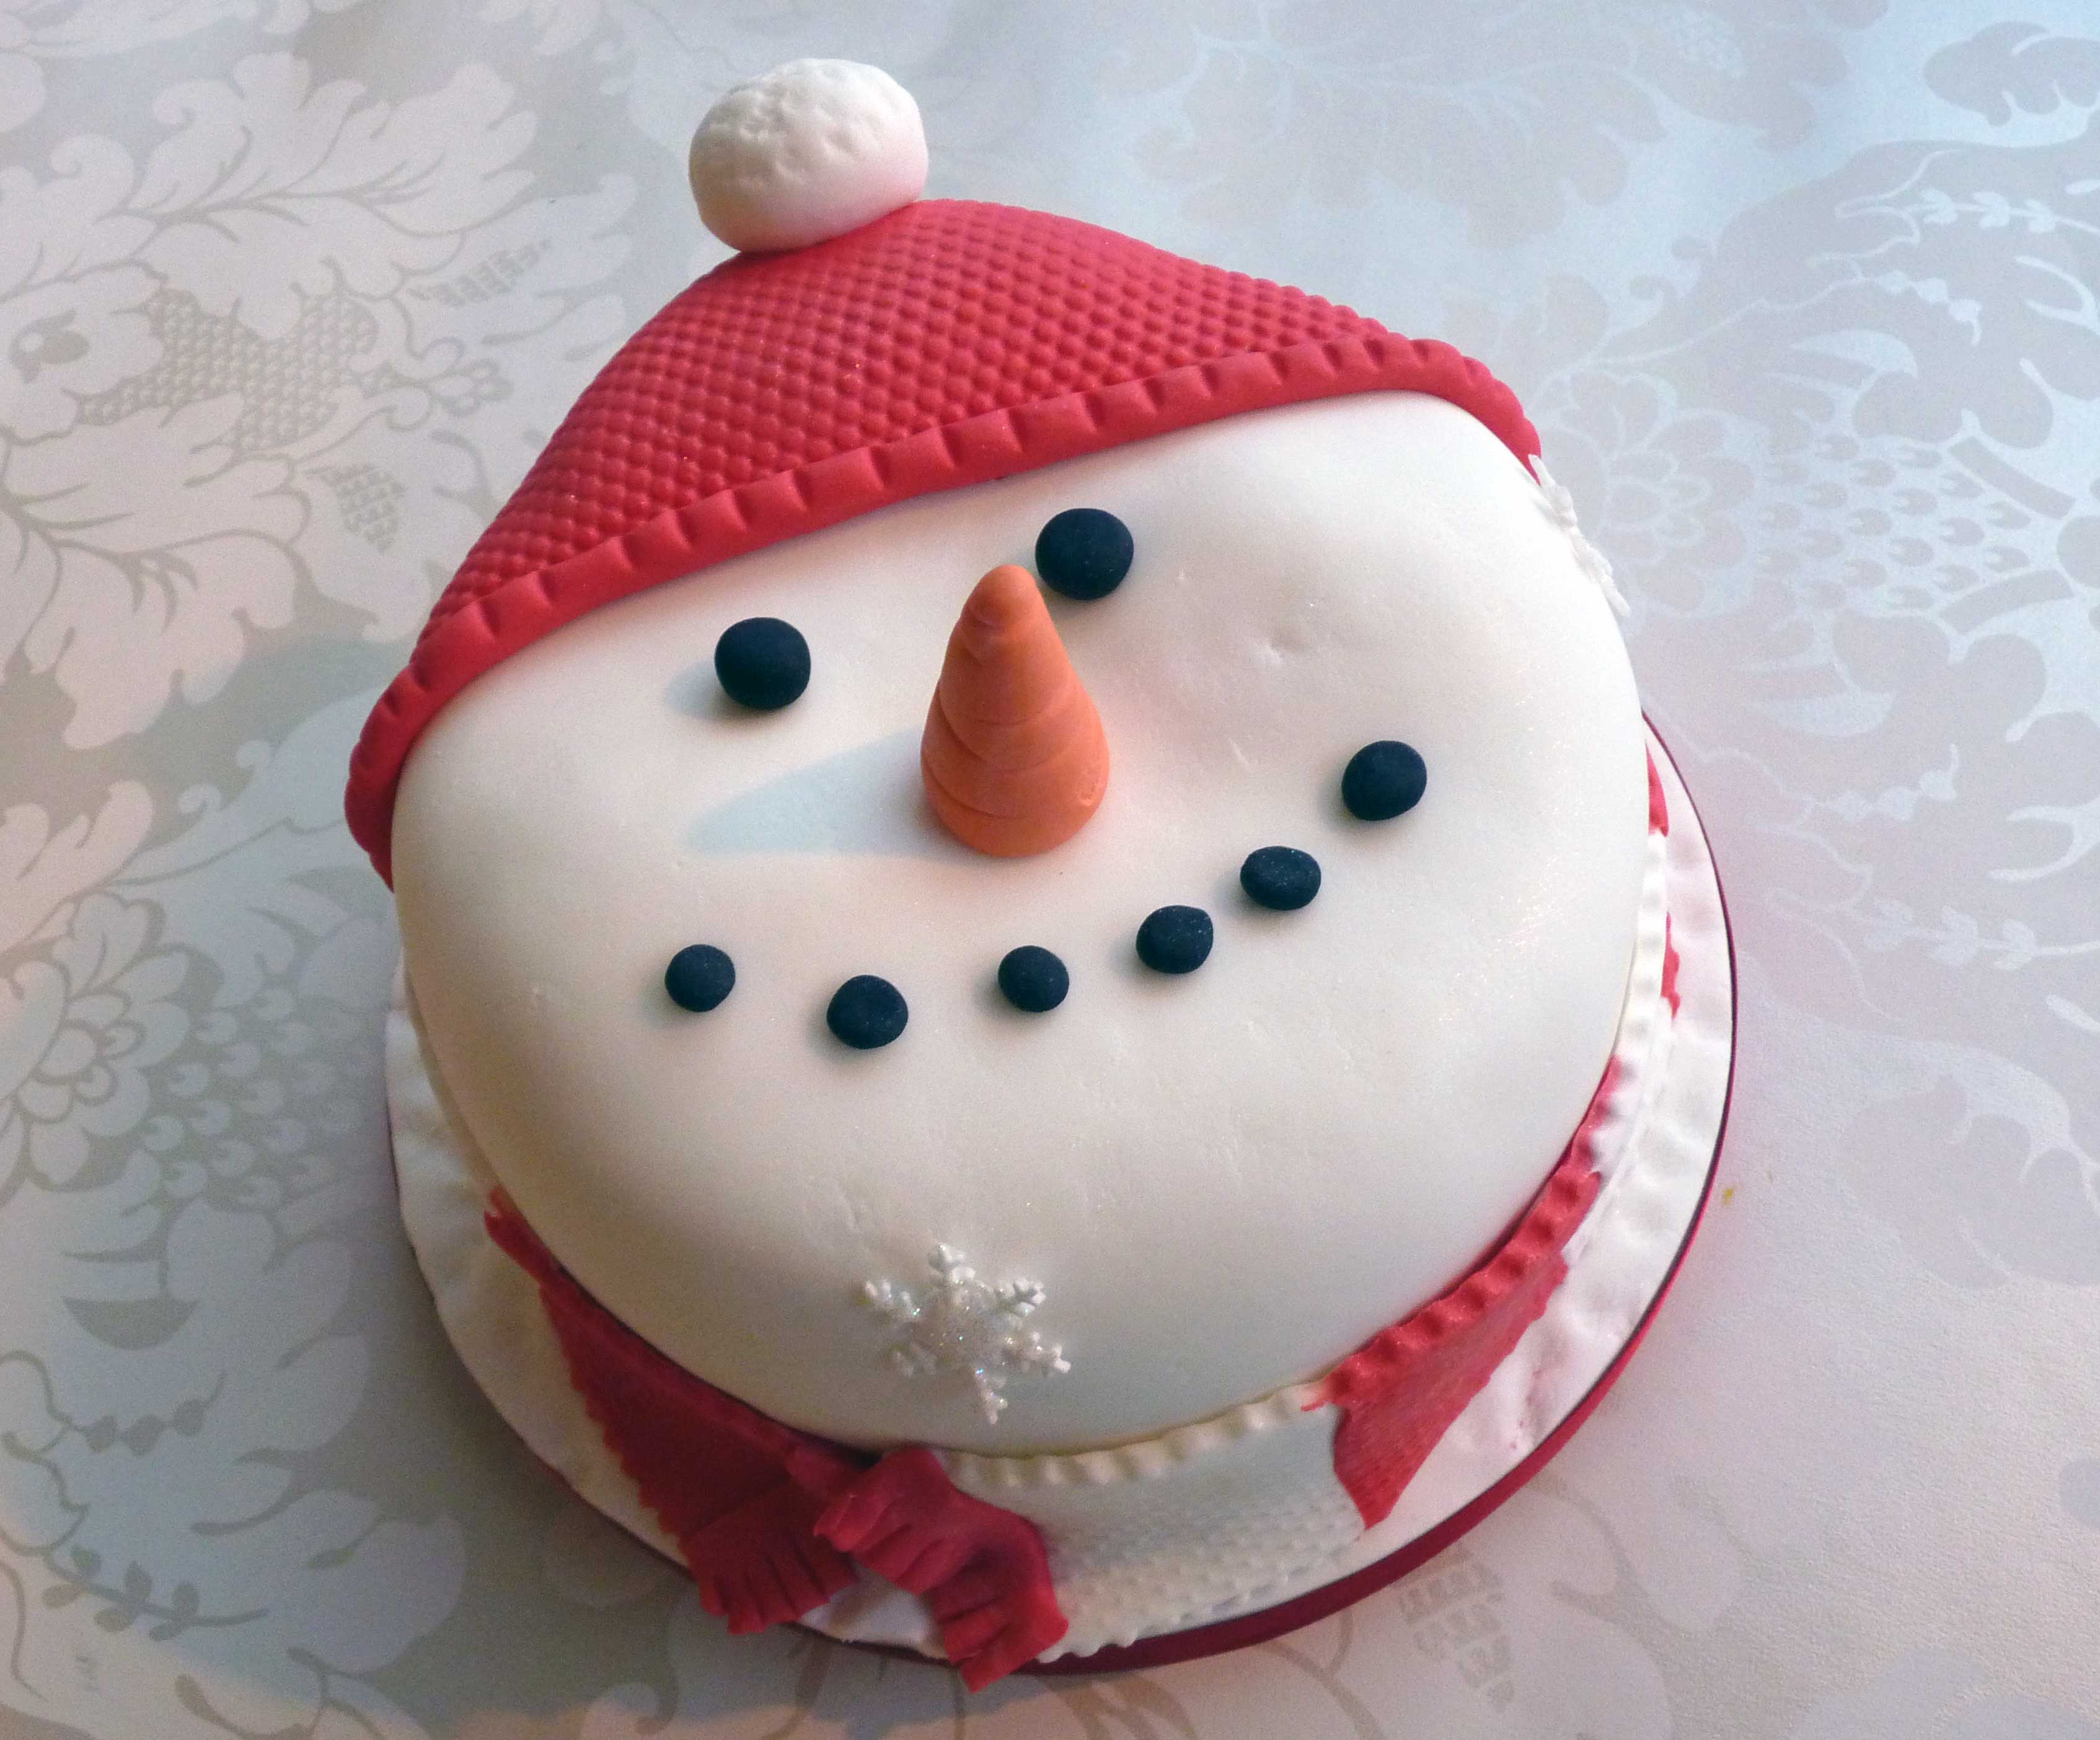 Snowman Cakes Decoration Ideas